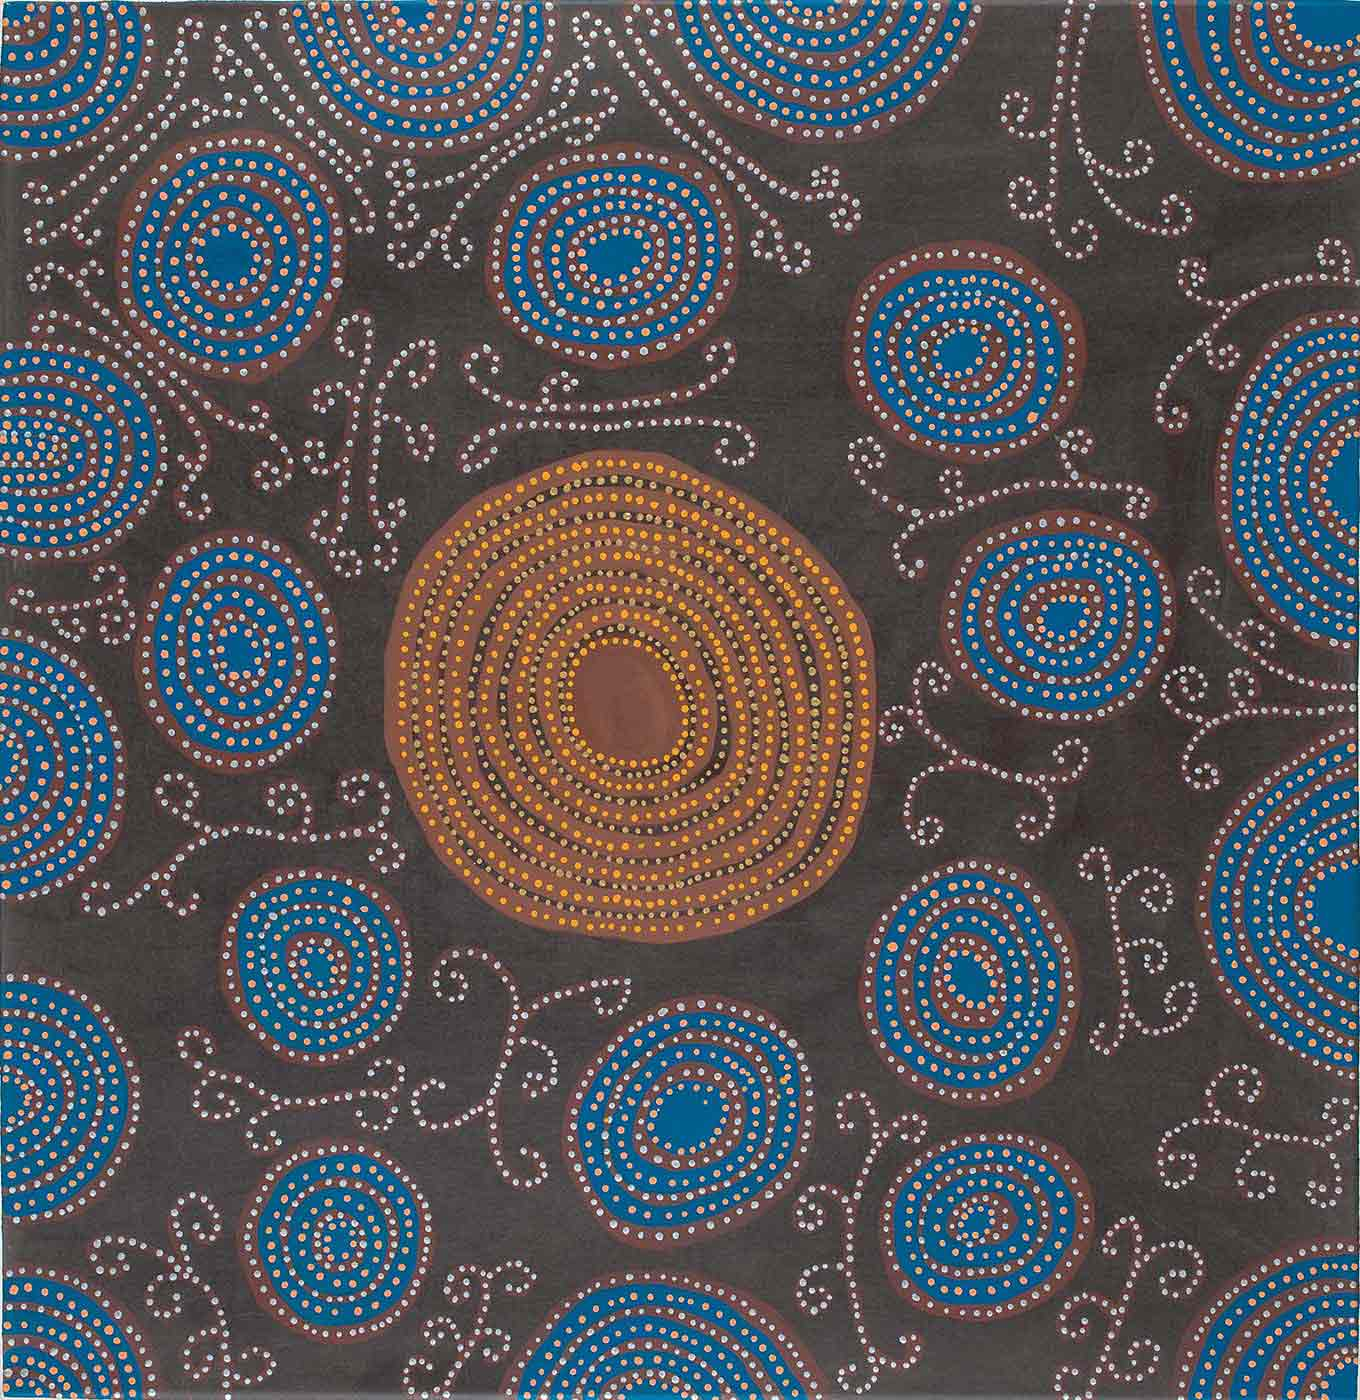 A dot painting on canvas on a black background with a large brown concentric circle motif in the centre dotted with yellow, black and beige, surrounded by blue concentric circles, semicircles and quarter circles dotted in silver, orange and brown. The bottom edge only has one semicircle on it. In between the circles are straight and curved lines with curls on them in brown and dotted with silver. - click to view larger image